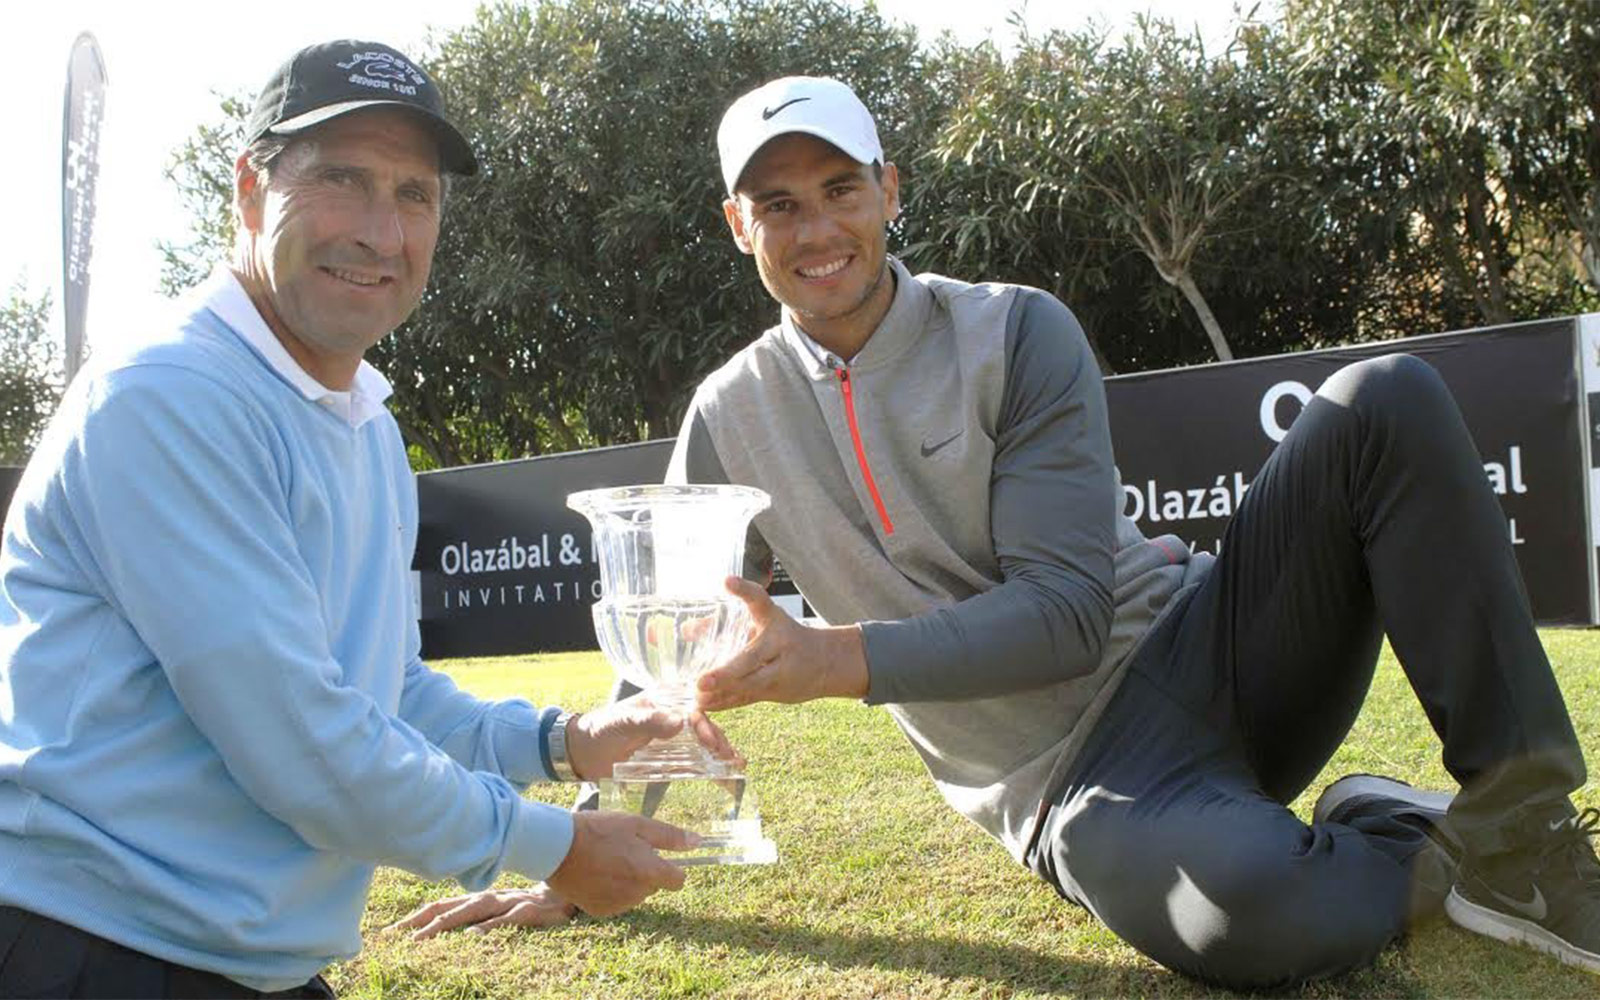 Nadal & Olazábal, united in aid of the most disadvantaged